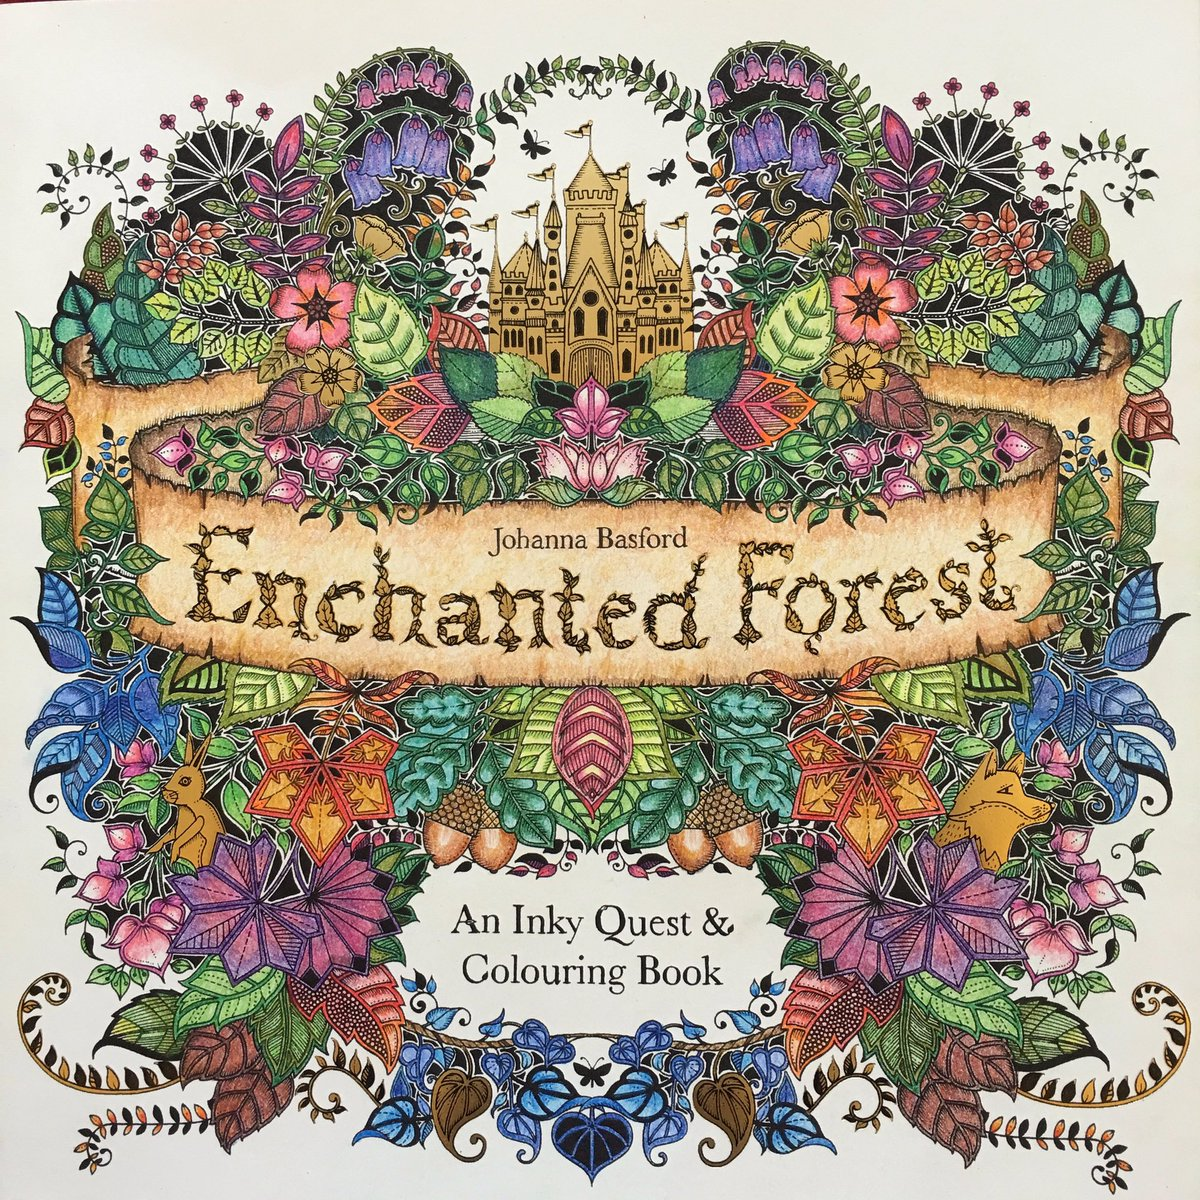 Surabhi On Twitter So Happy To Have Started Johannabasford Enchanted Forest Colouring Book This Is My Completed Front Cover Tco Ub7nWwBZGP